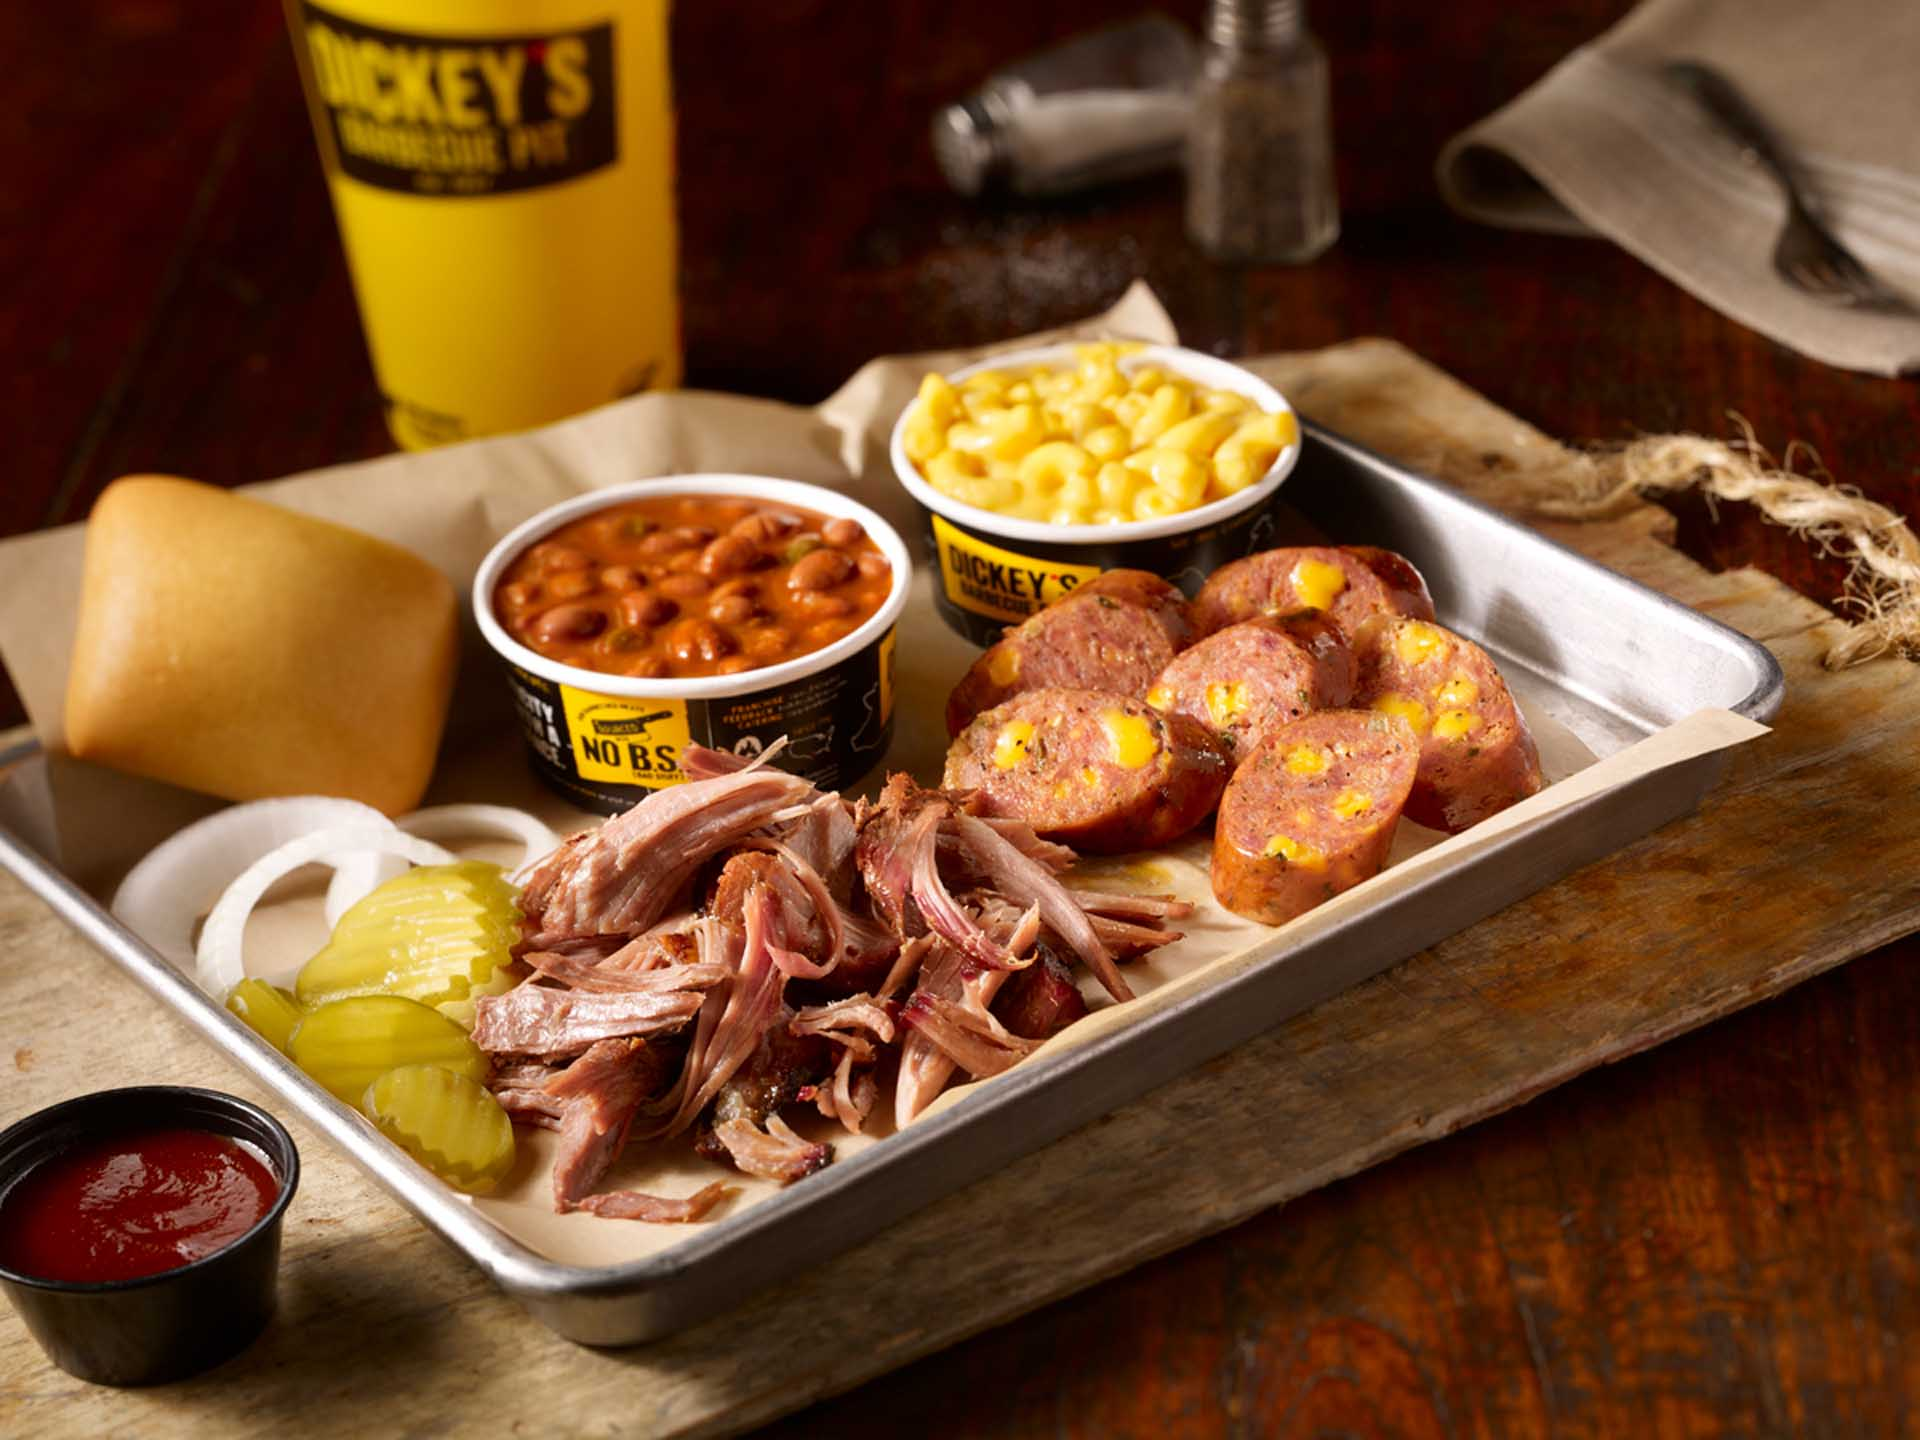 Global Franchise: Dickey's BBQ pit